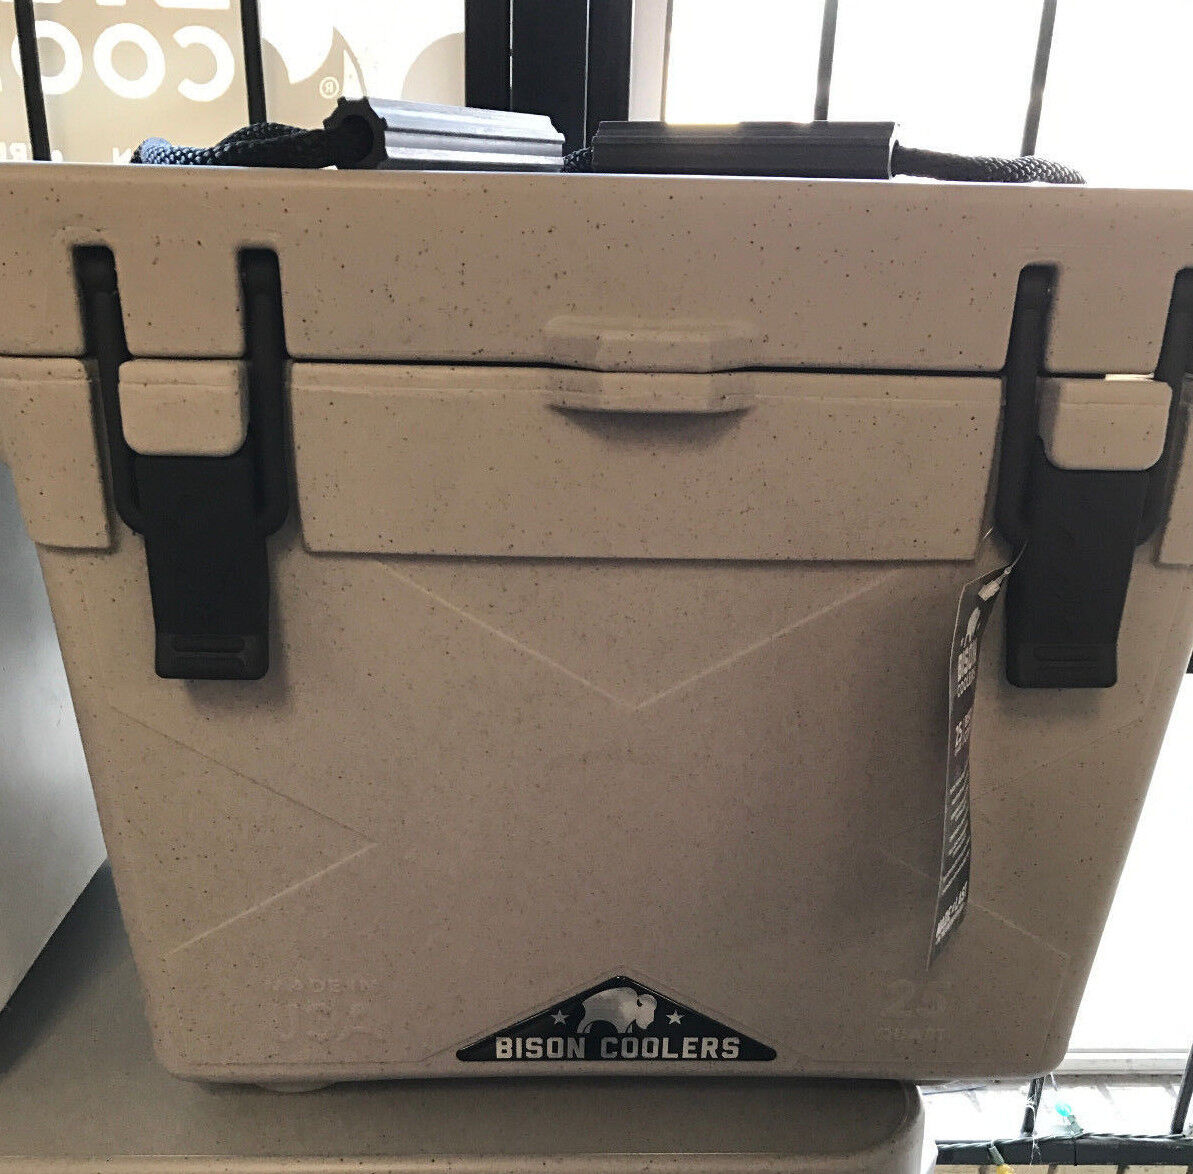 Cooler ... USA MADE    ... Bison 25QT       FREE GIFT INCLUDED